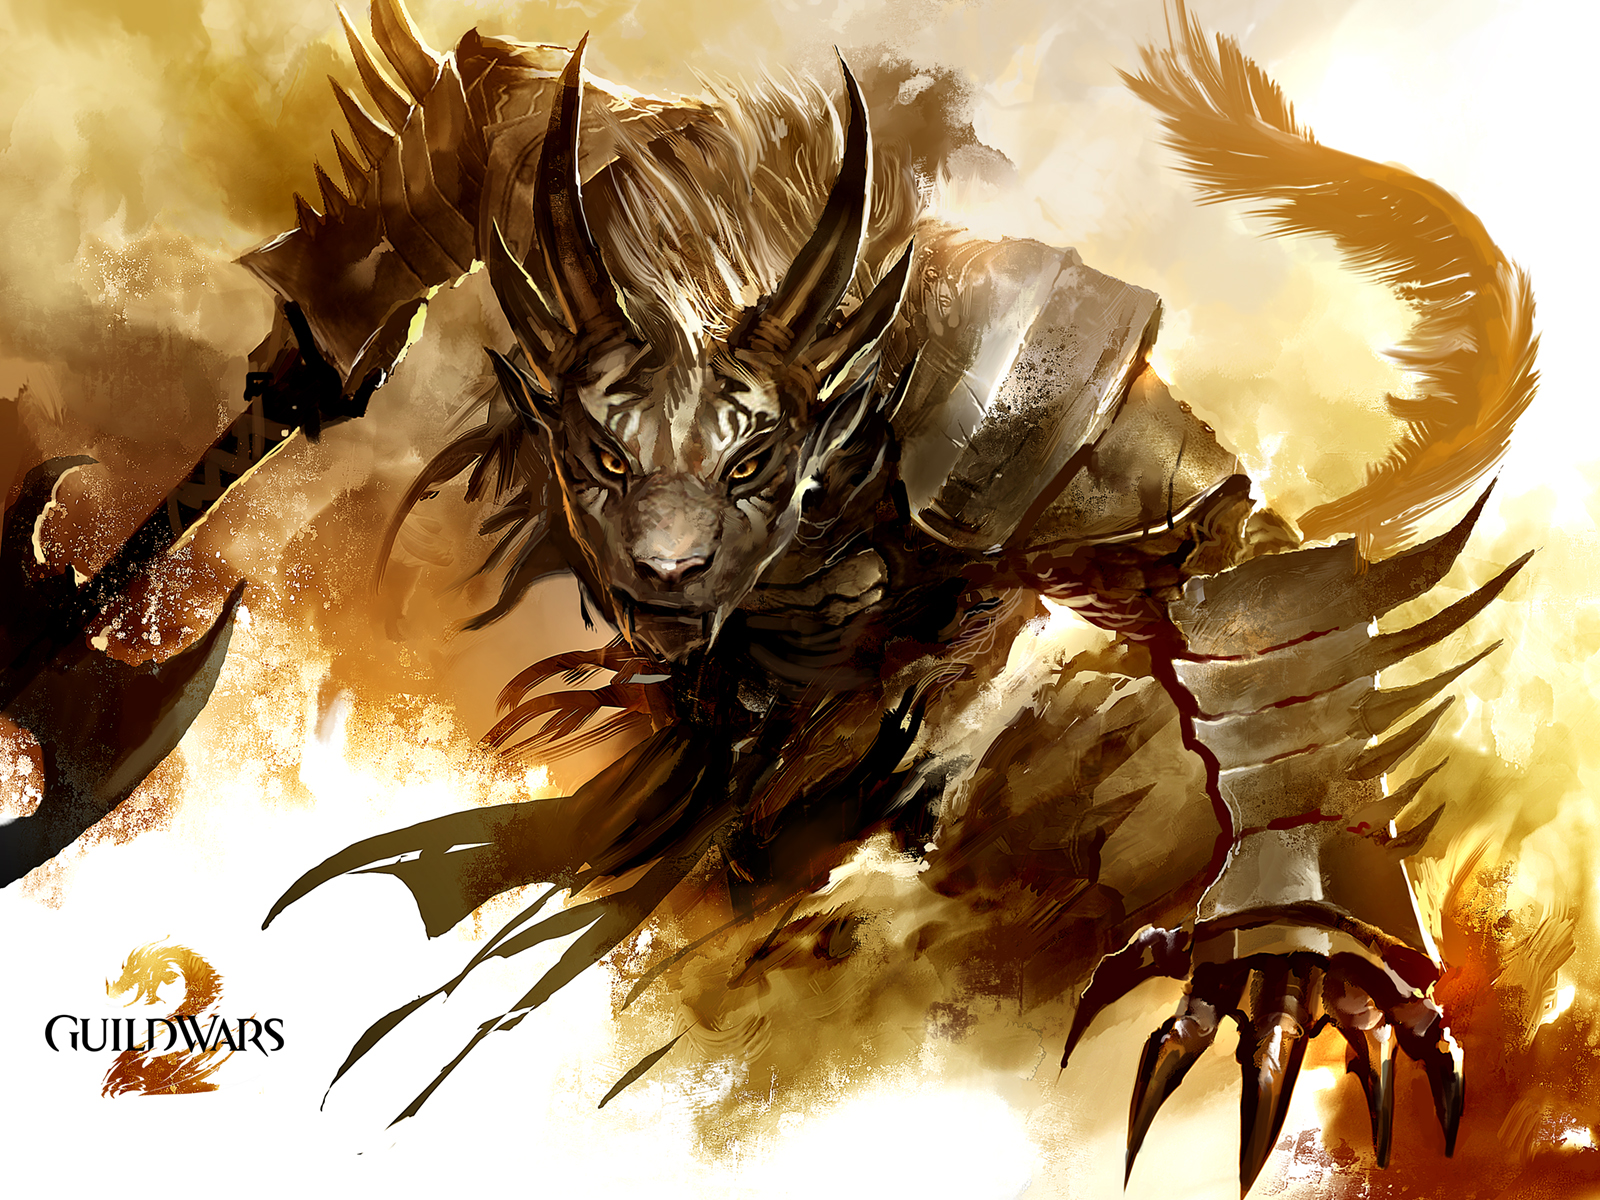 HQ Guild Wars 2 Wallpapers | File 1707.56Kb